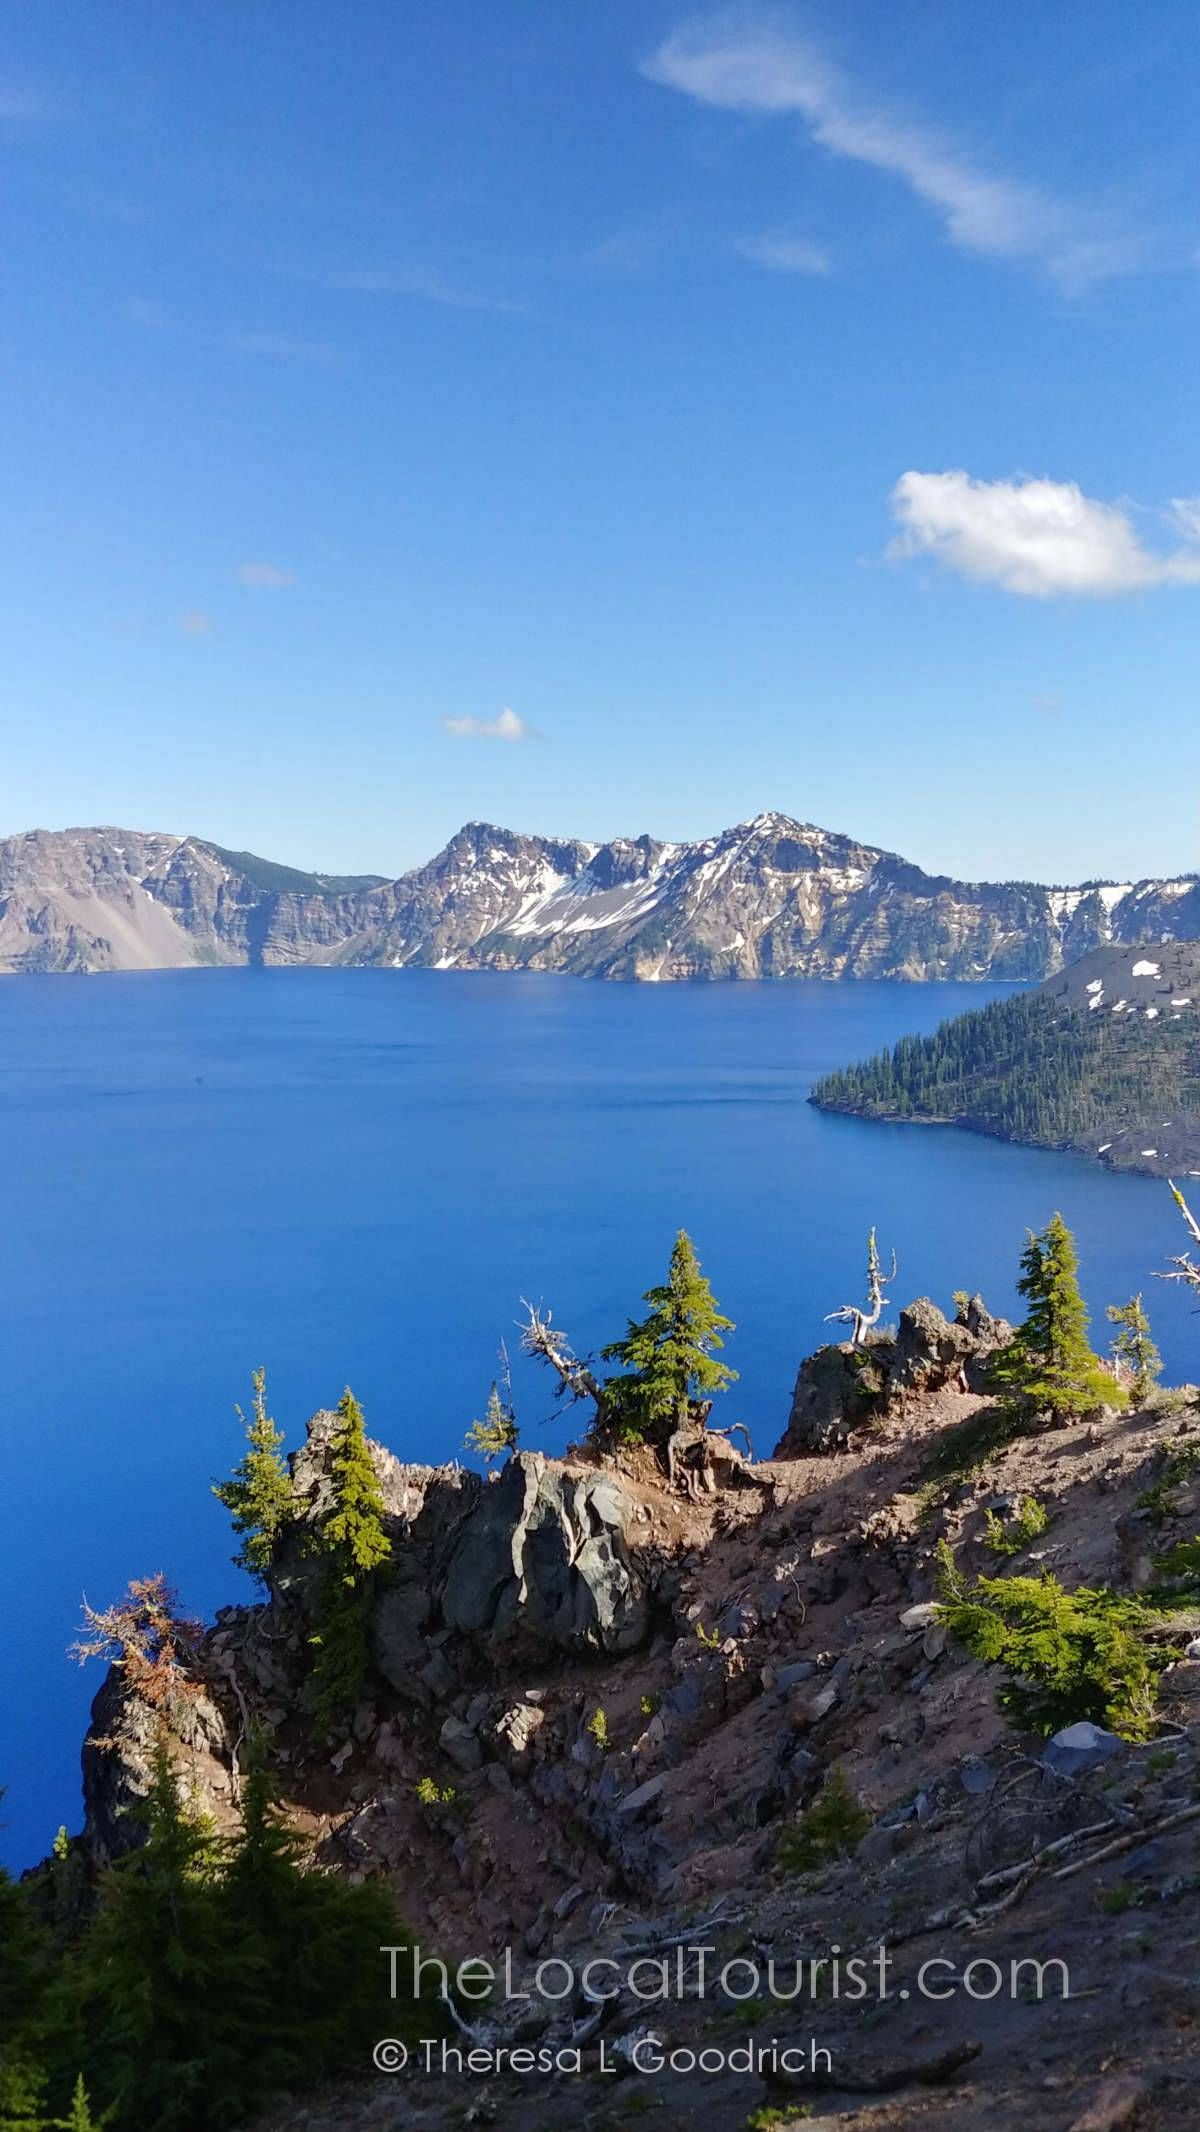 The Stunning, Cerulean Crater Lake National Park #craterlakeoregon The cerulean Crater Lake National Park will take your breath away. | Things to do in Oregon | Things to do near Bend Oregon | National Park Service #craterlakenationalpark